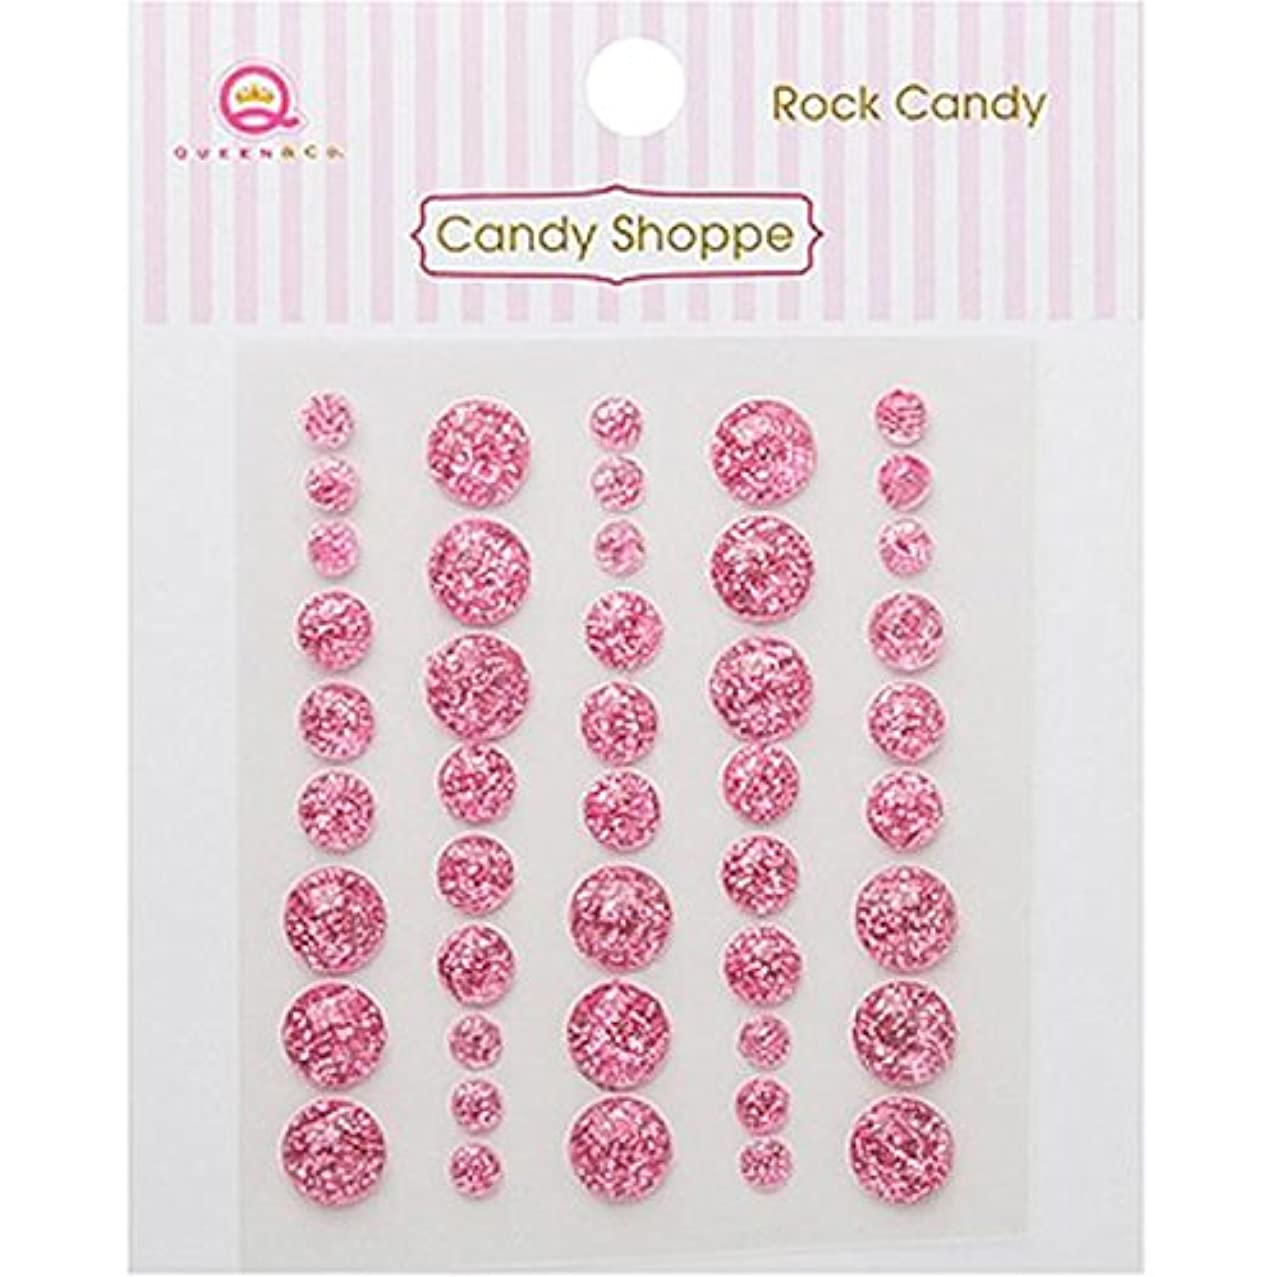 Queen & Co Candy Shoppe Self-Adhesive Rock Candy Dots Embellishments, 4, 6 and 8mm, Pink